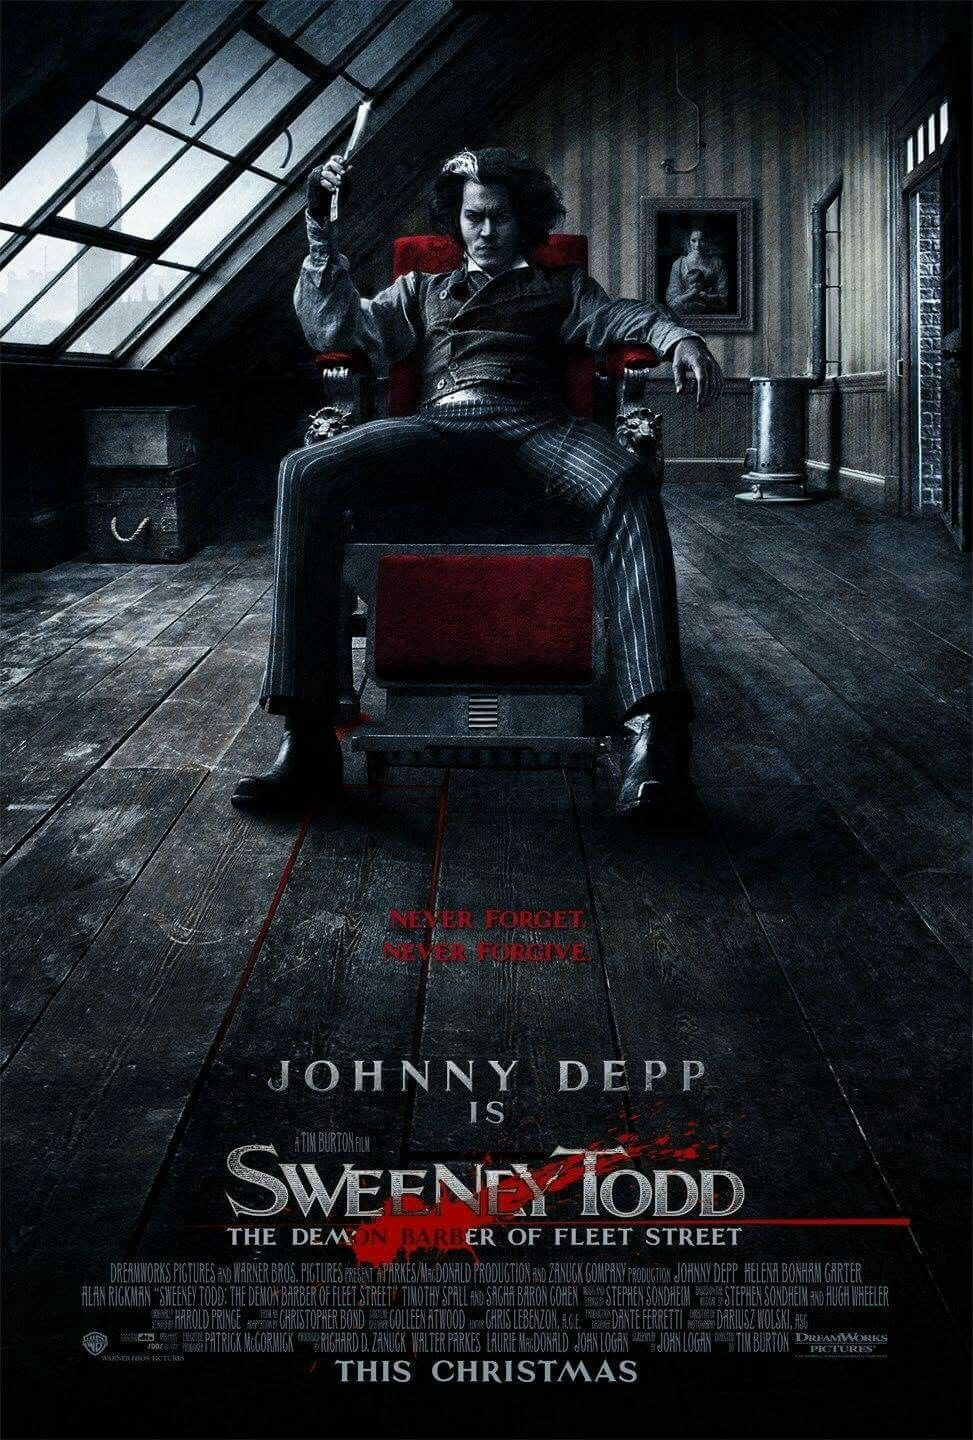 Sweeney Todd The Demon Barber Of Fleet Street Movie Poster Fantastic Movie Posters Scifimovies Posters Horrormovies P Sweeney Todd Musical Movies Johnny Depp